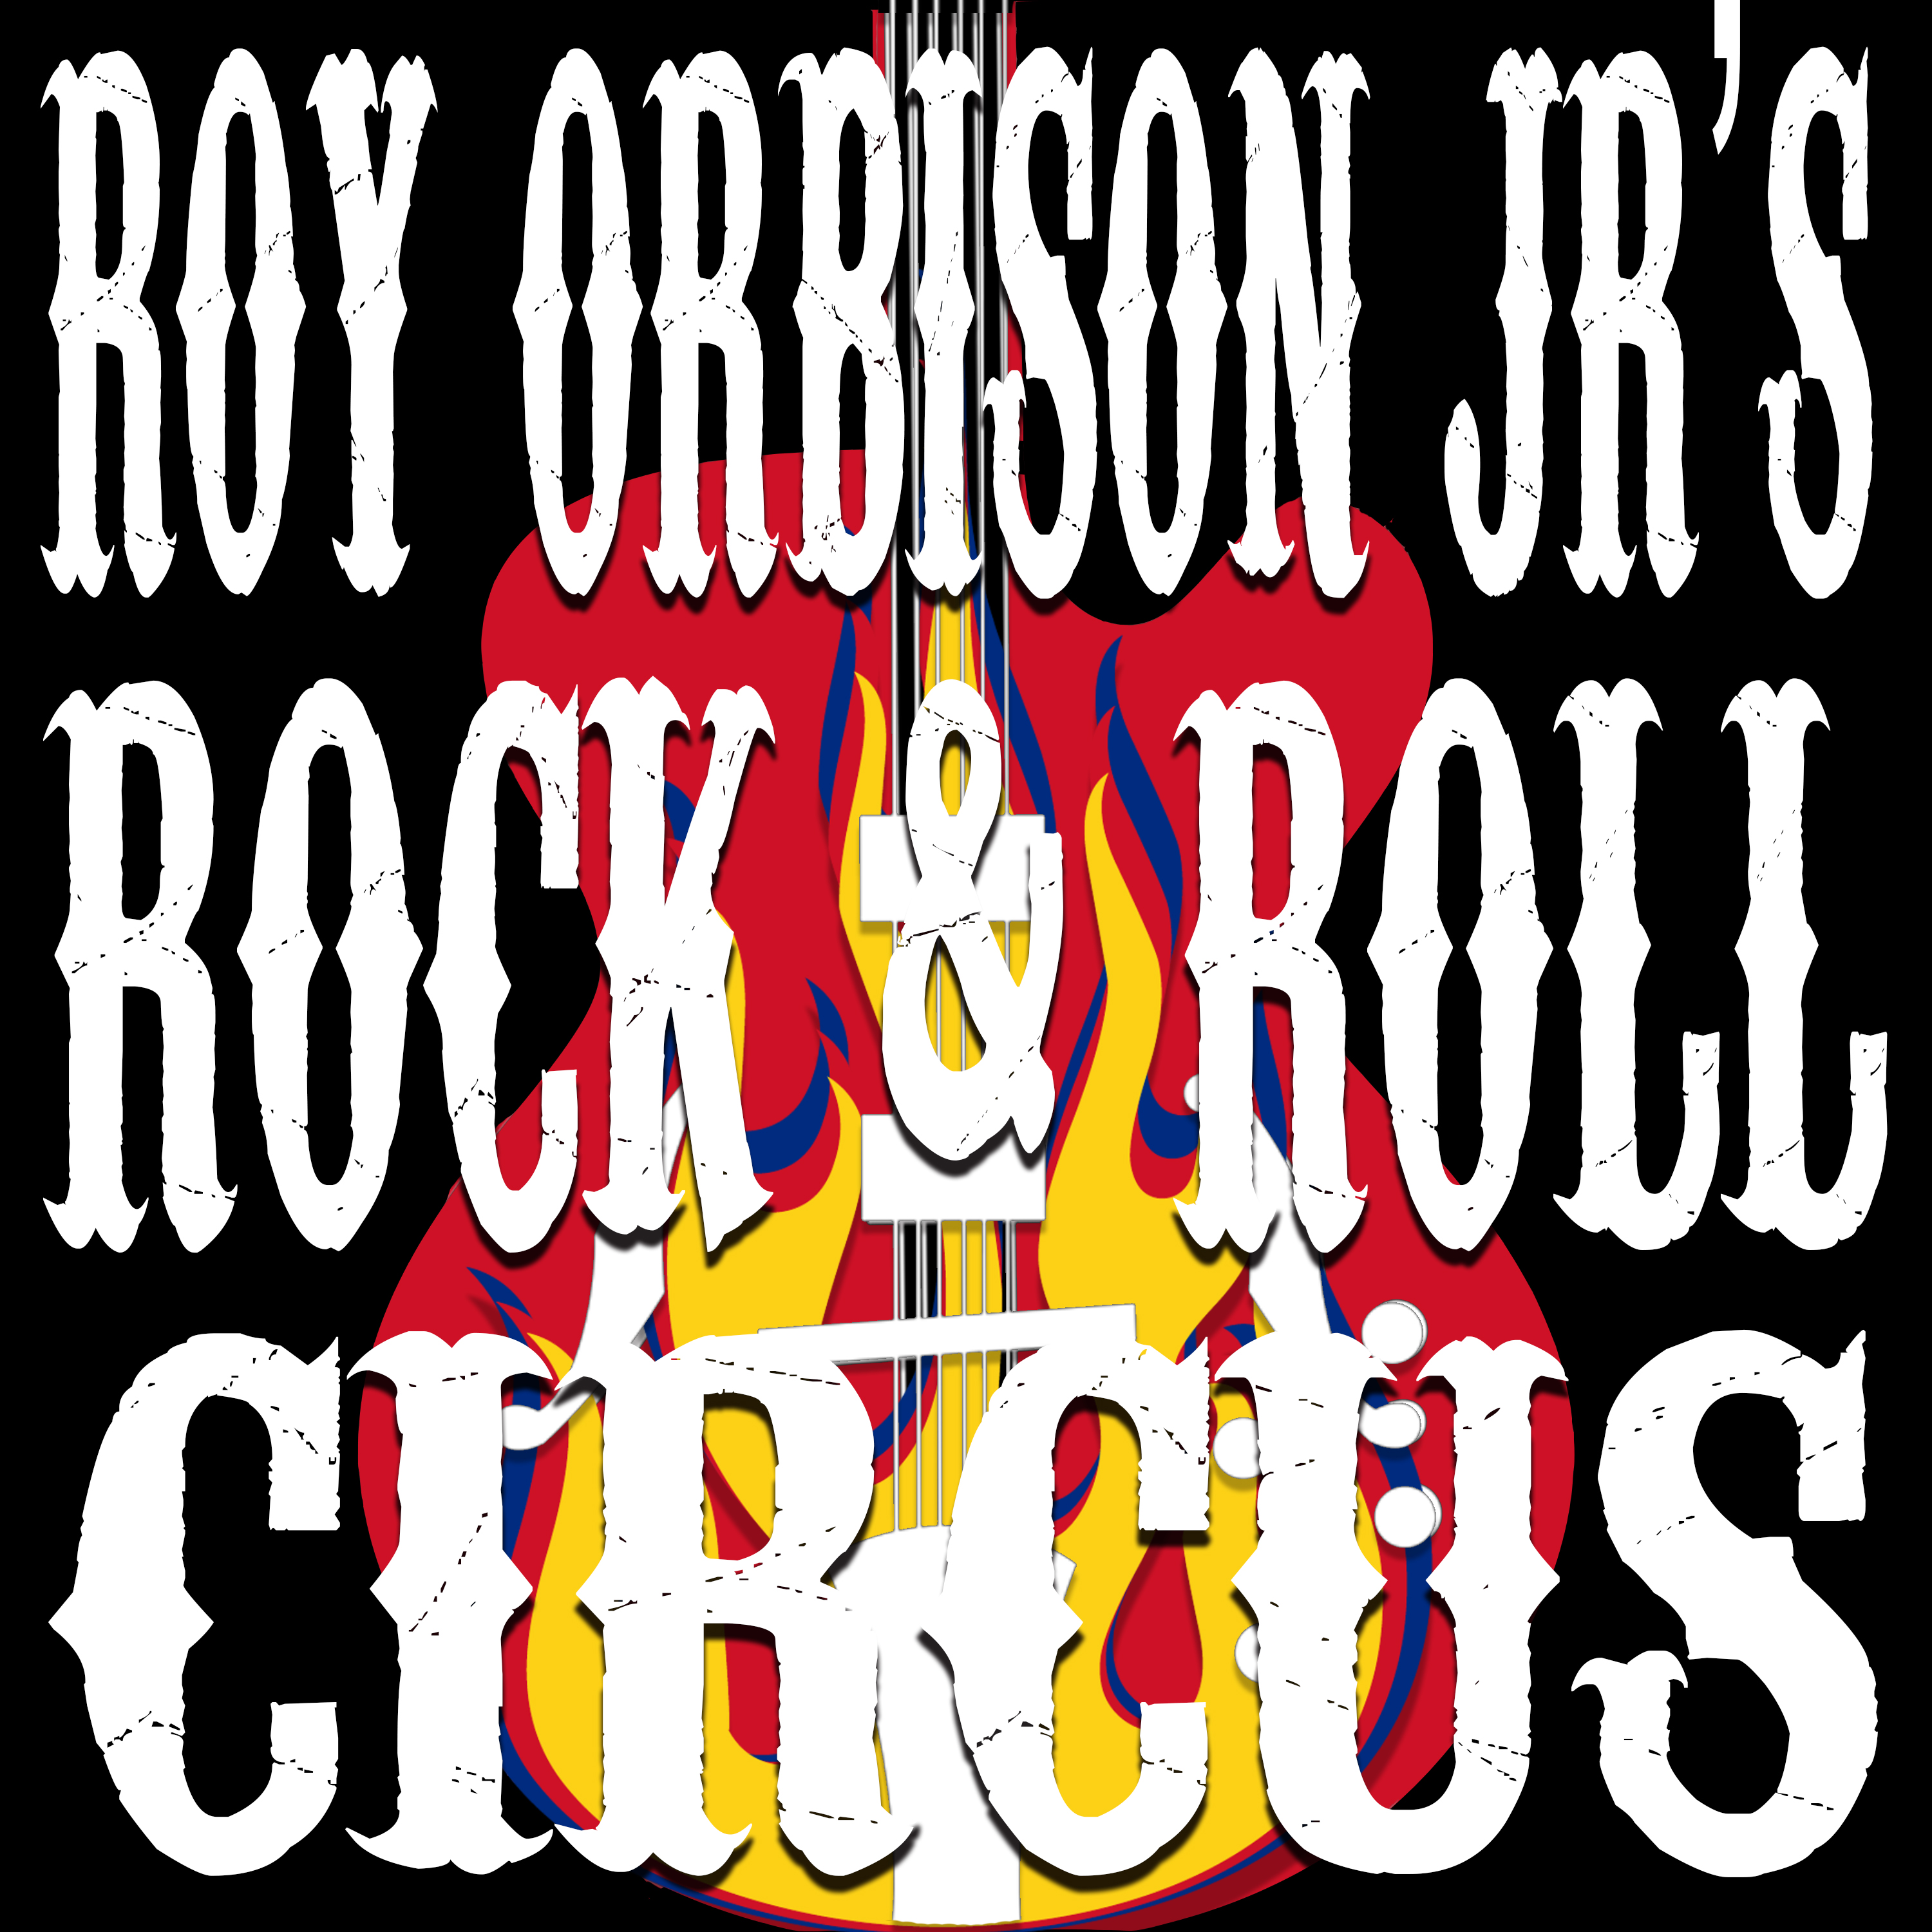 Roy Orbison Jr's Rock and Roll Circus